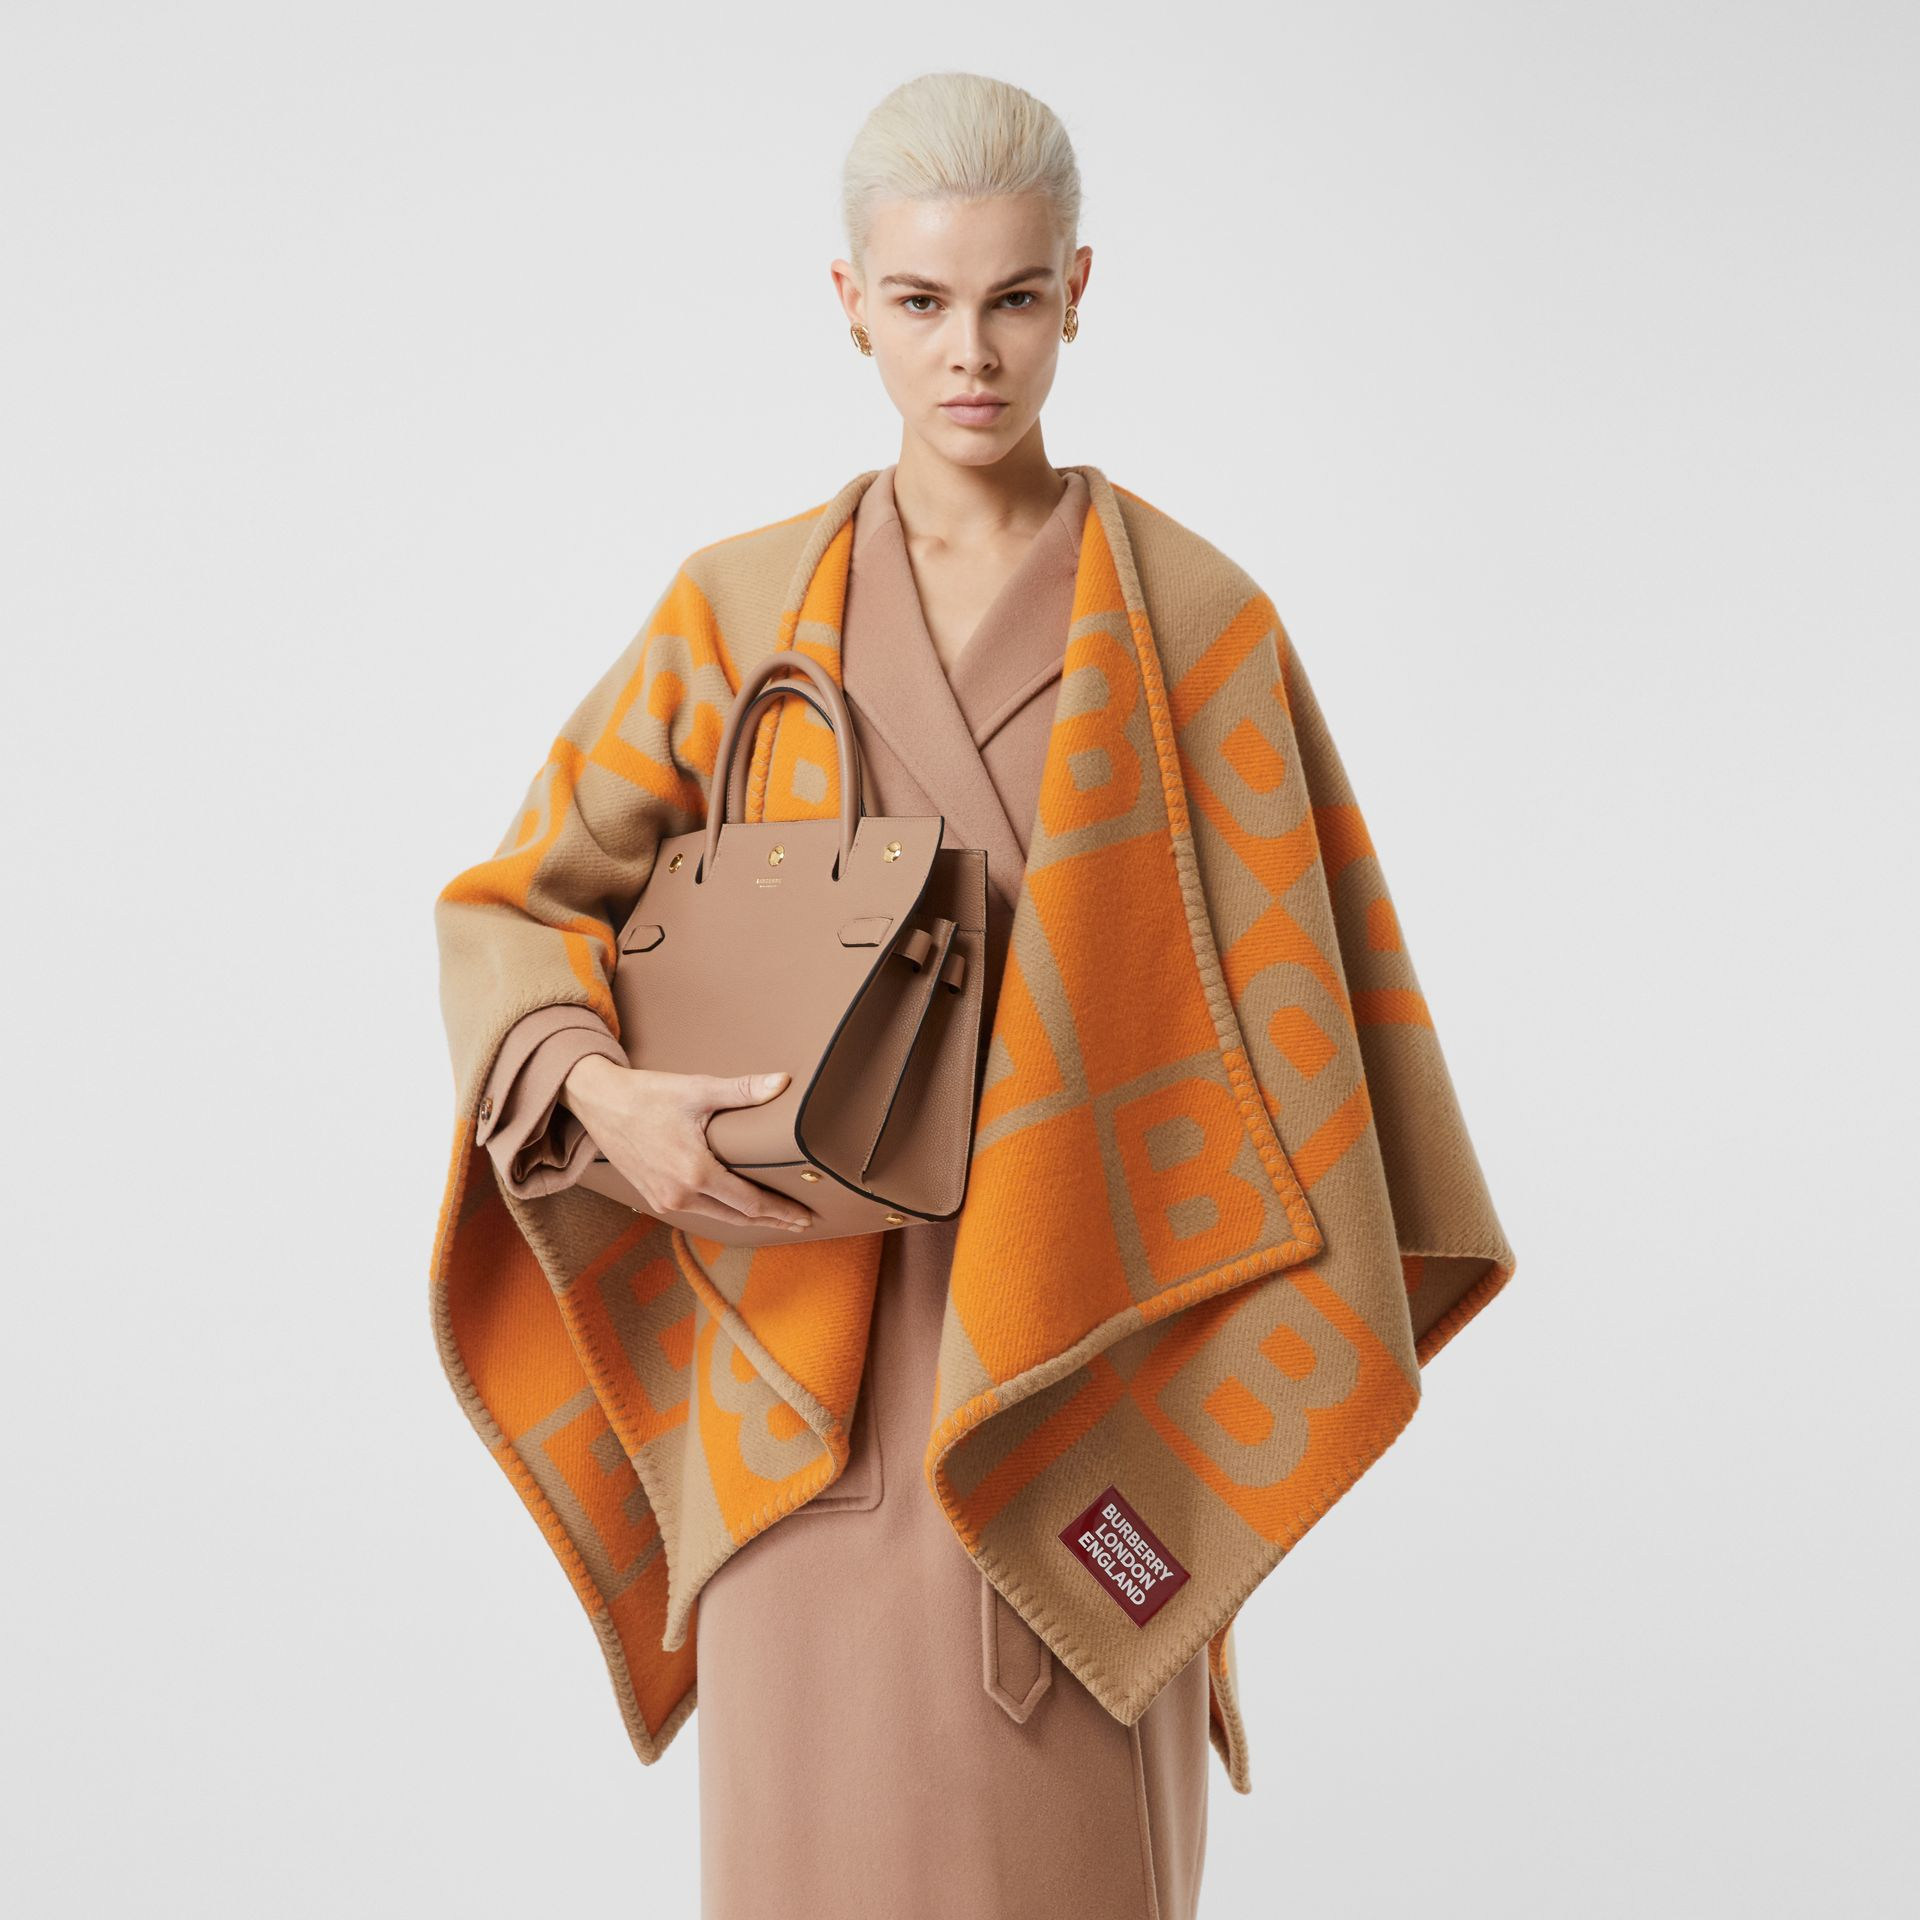 B Motif Merino Wool Cashmere Cape in Orange - Women | Burberry - gallery image 4